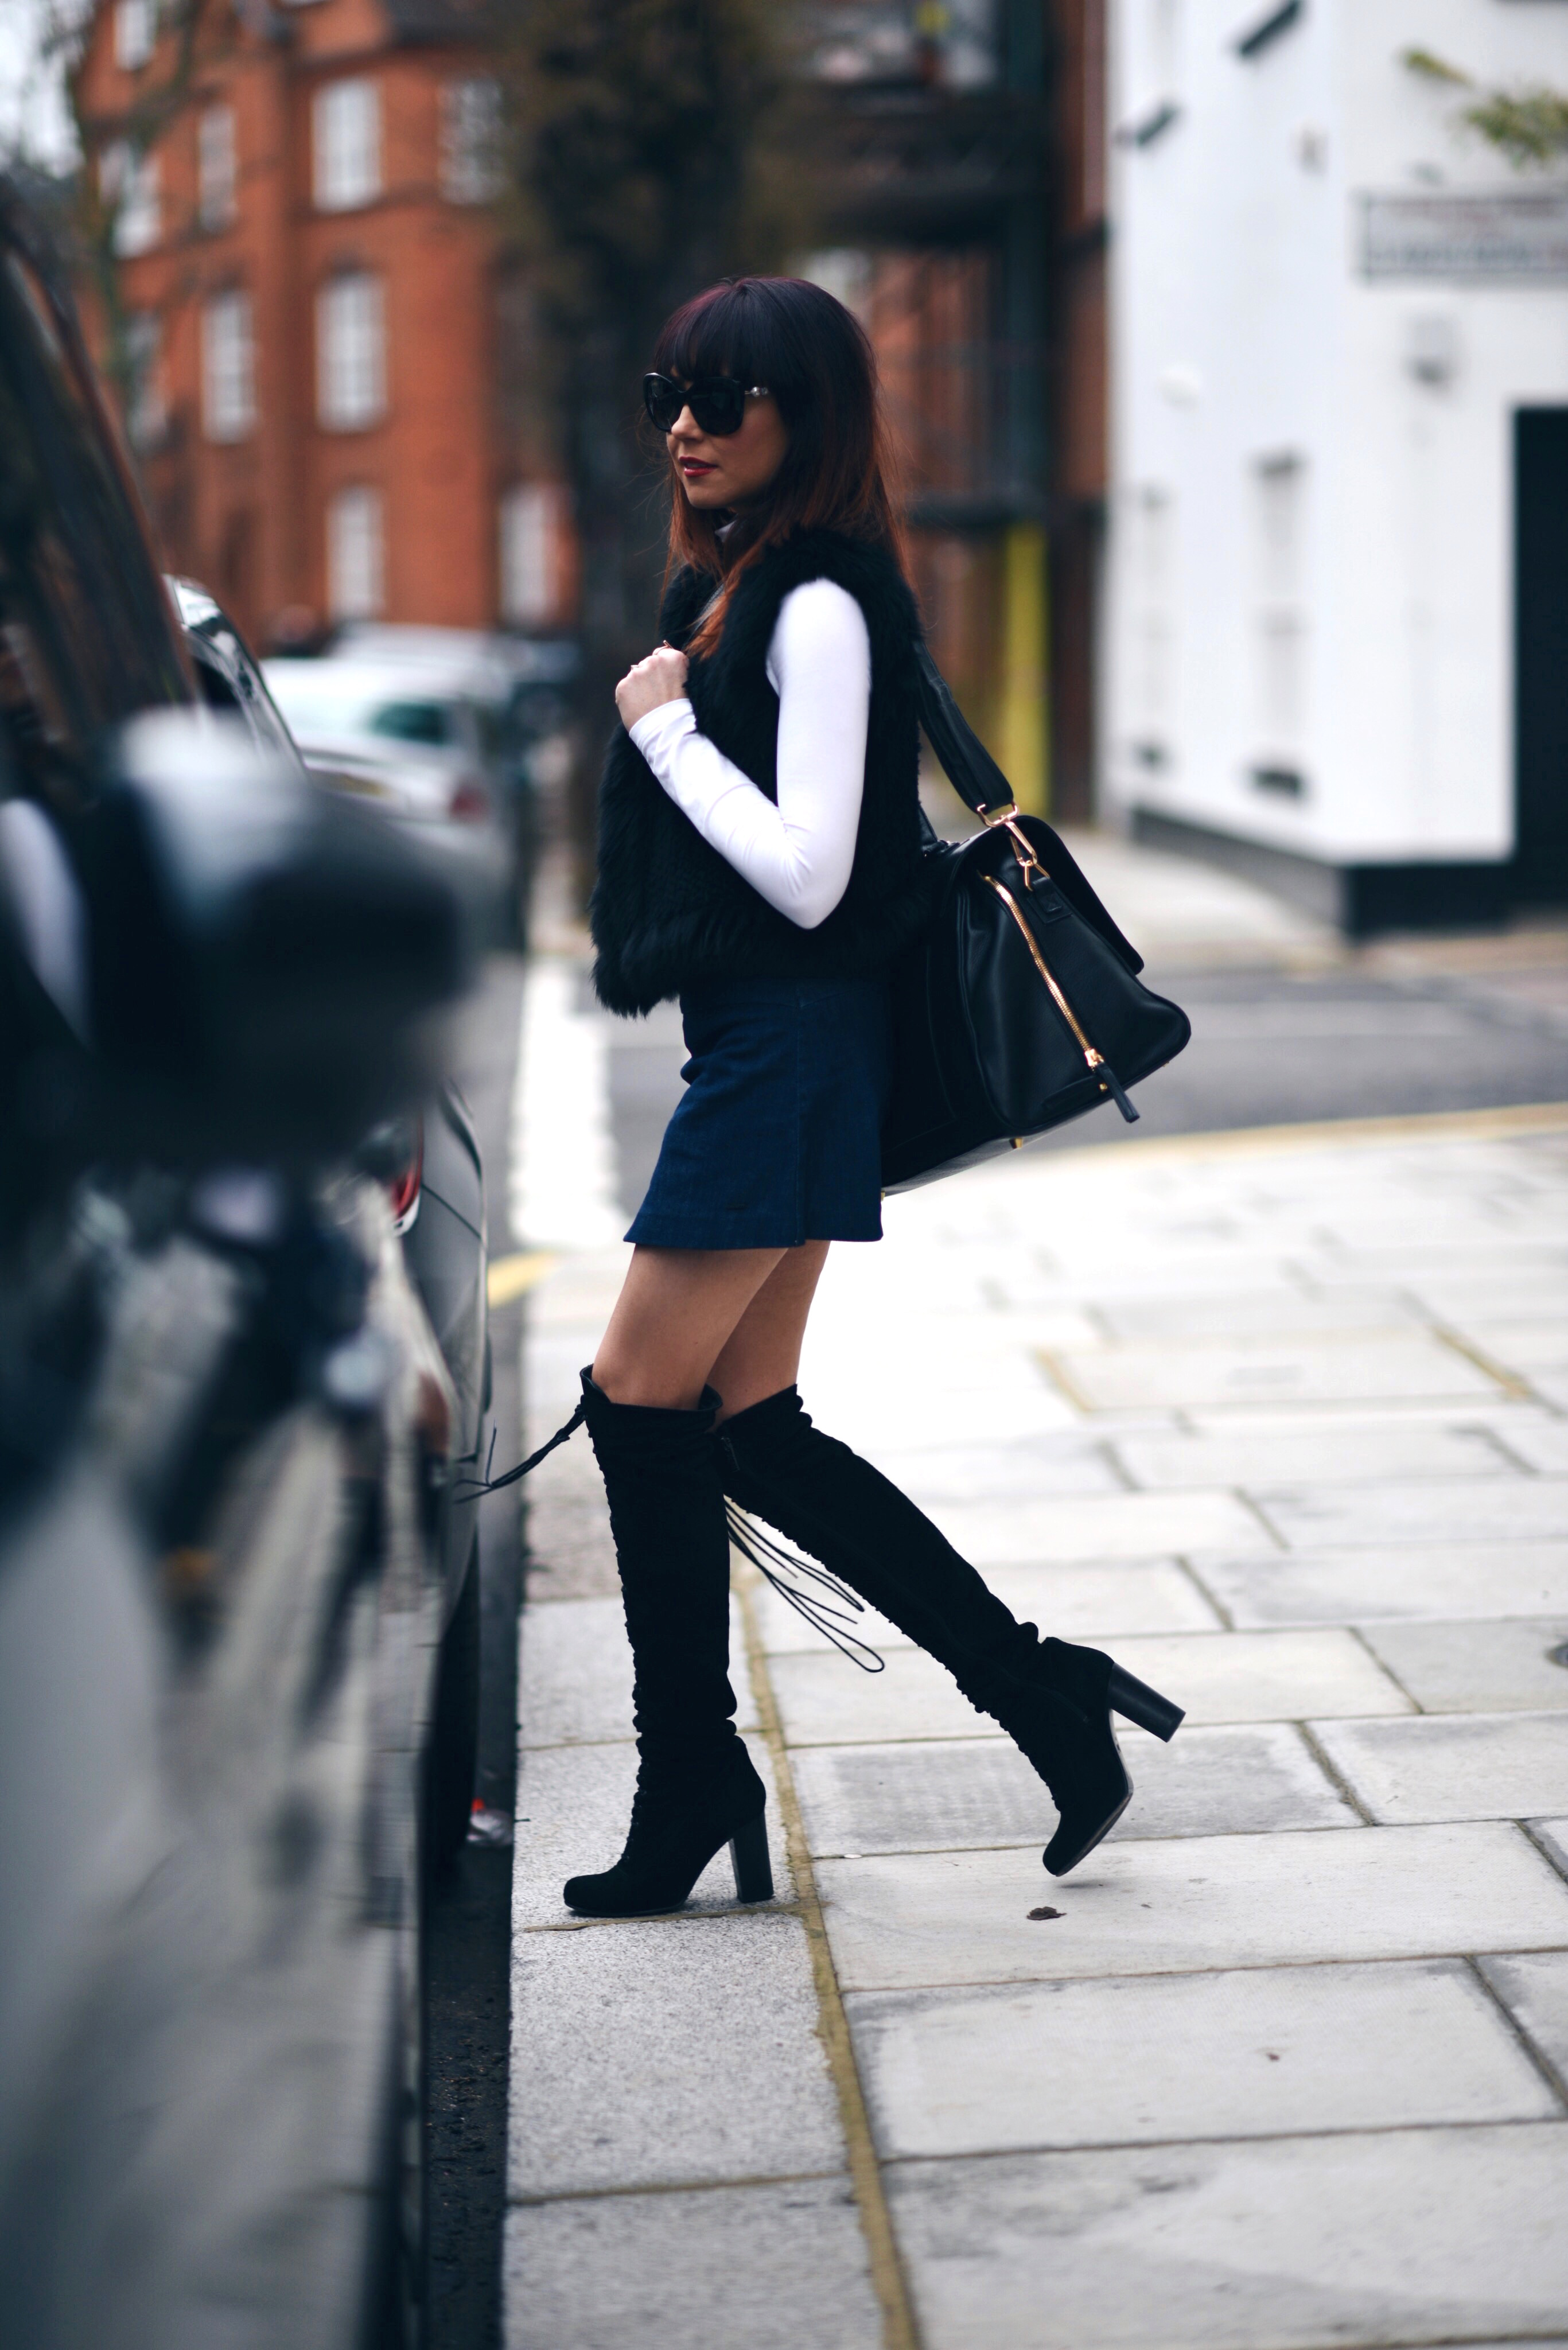 Lorna Luxe samples a pair of over the knee boots with a skirt and faux fur gilet here, a glamorous and chic style which suits any occasion. Gilet: Yves Salomon, Bag: Ectu LA, Boots: Ted & Muffy, Skirt: Miss Sixty, Turtleneck: Lindex.